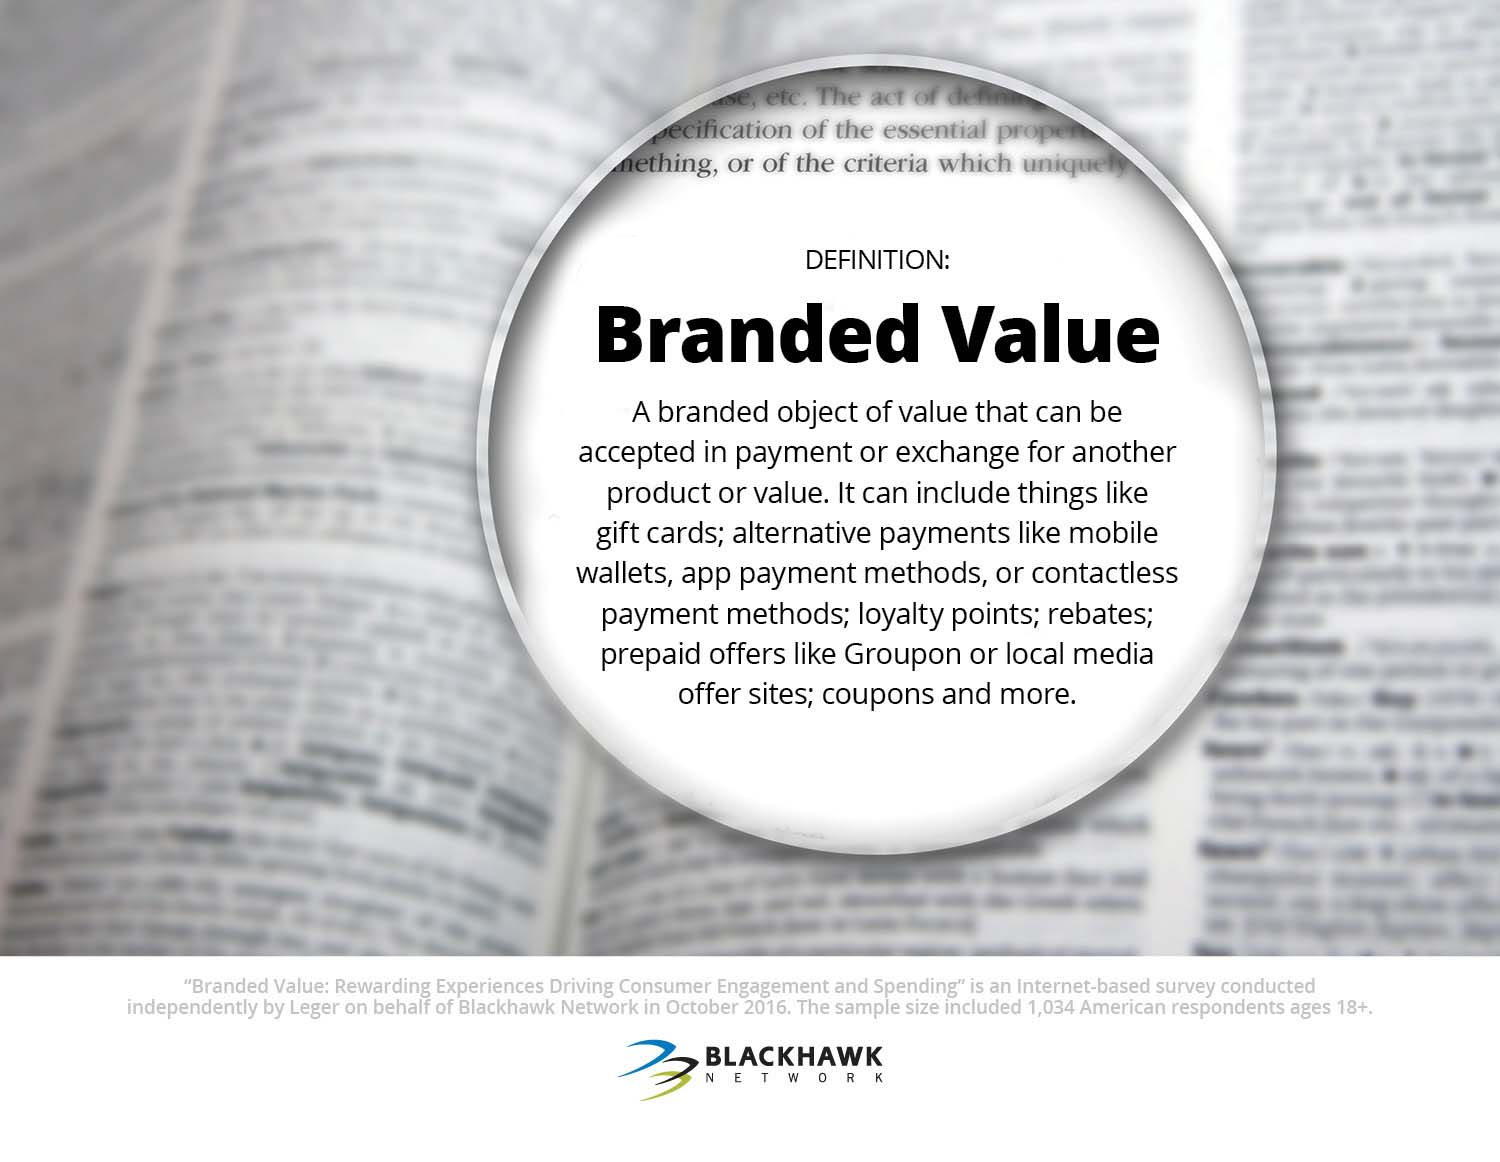 Evaluating Branded Value to Determine the Power of Brands: Does Brand Still Matter in the Digital Age?